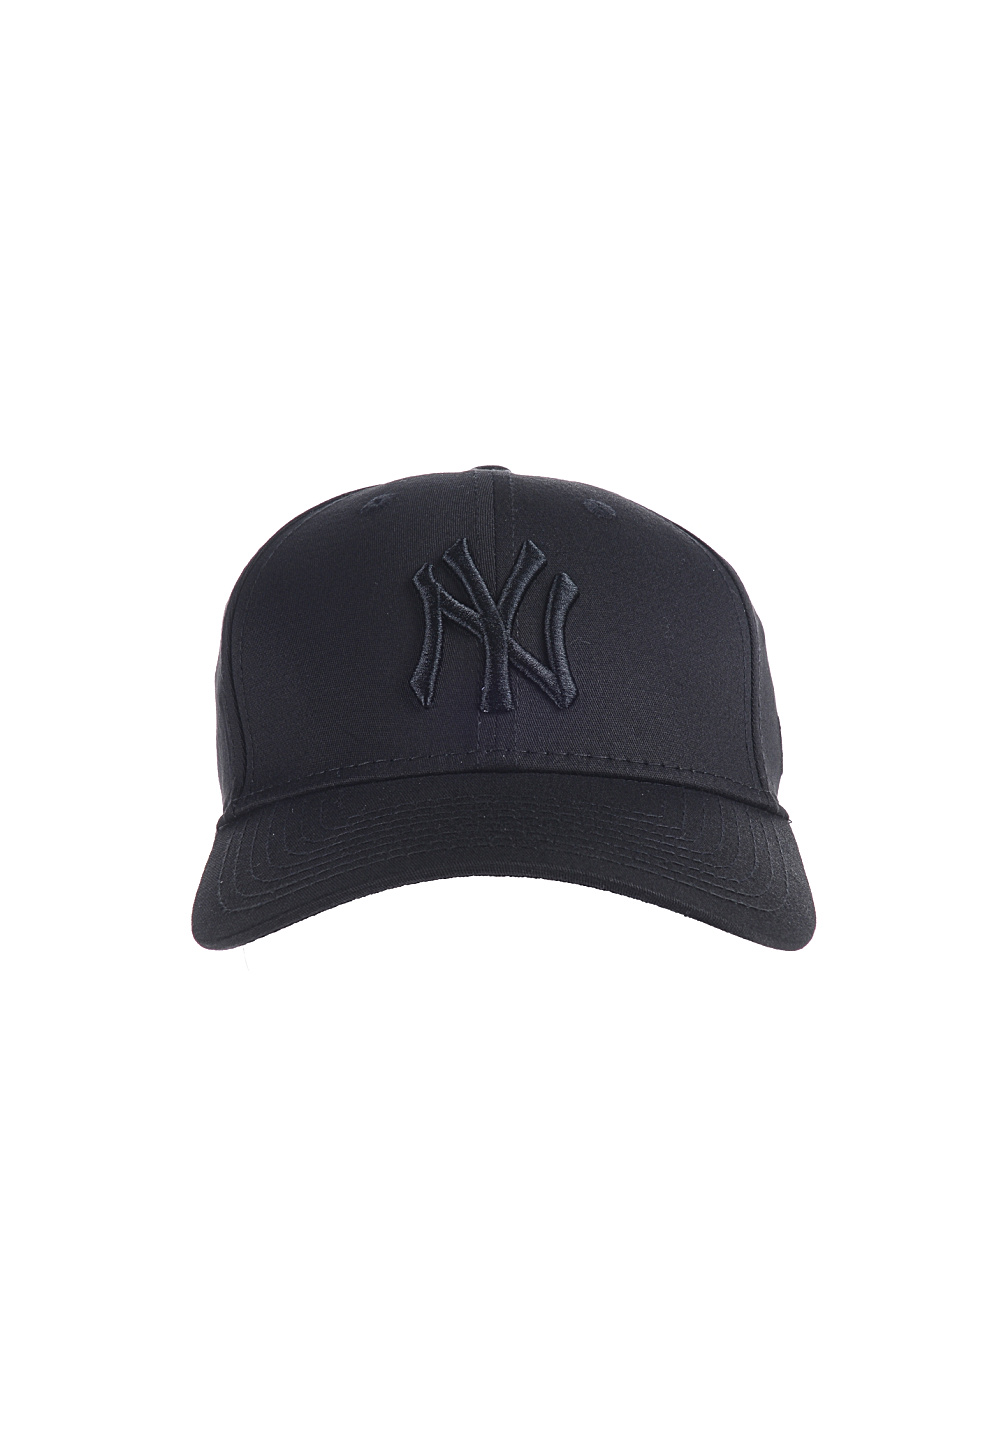 949d4ecb7501c Next. This product is currently out of stock. NEW Era. 39Thirty New York  Yankees - Flexfit Cap